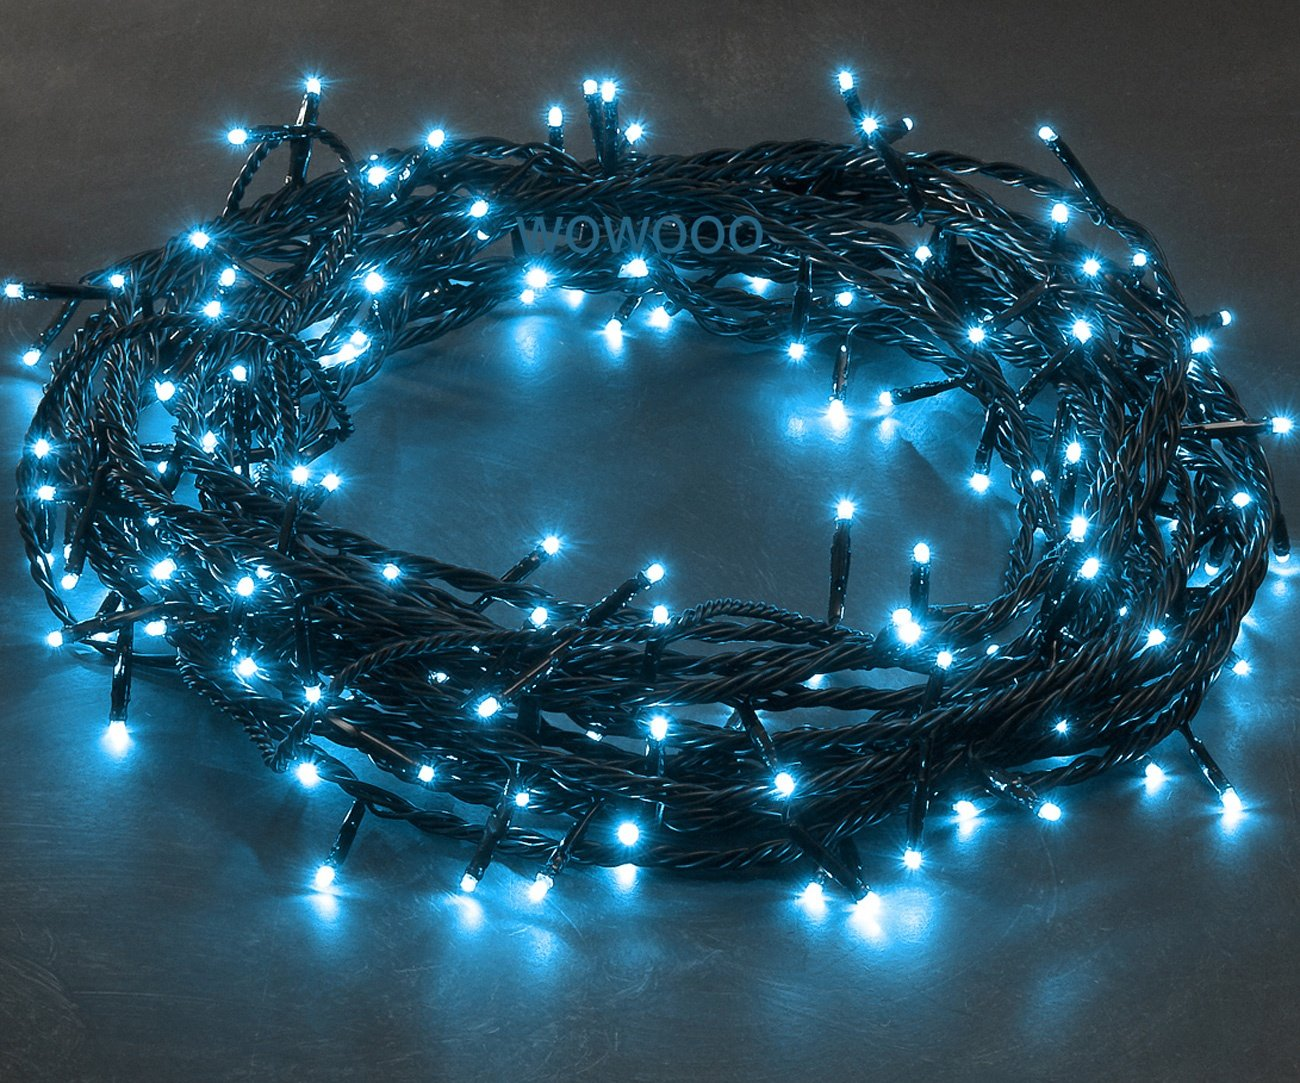 120x Micro LED LIGHT BLUE fairy lights, 8.3m, Christmas Festive ...